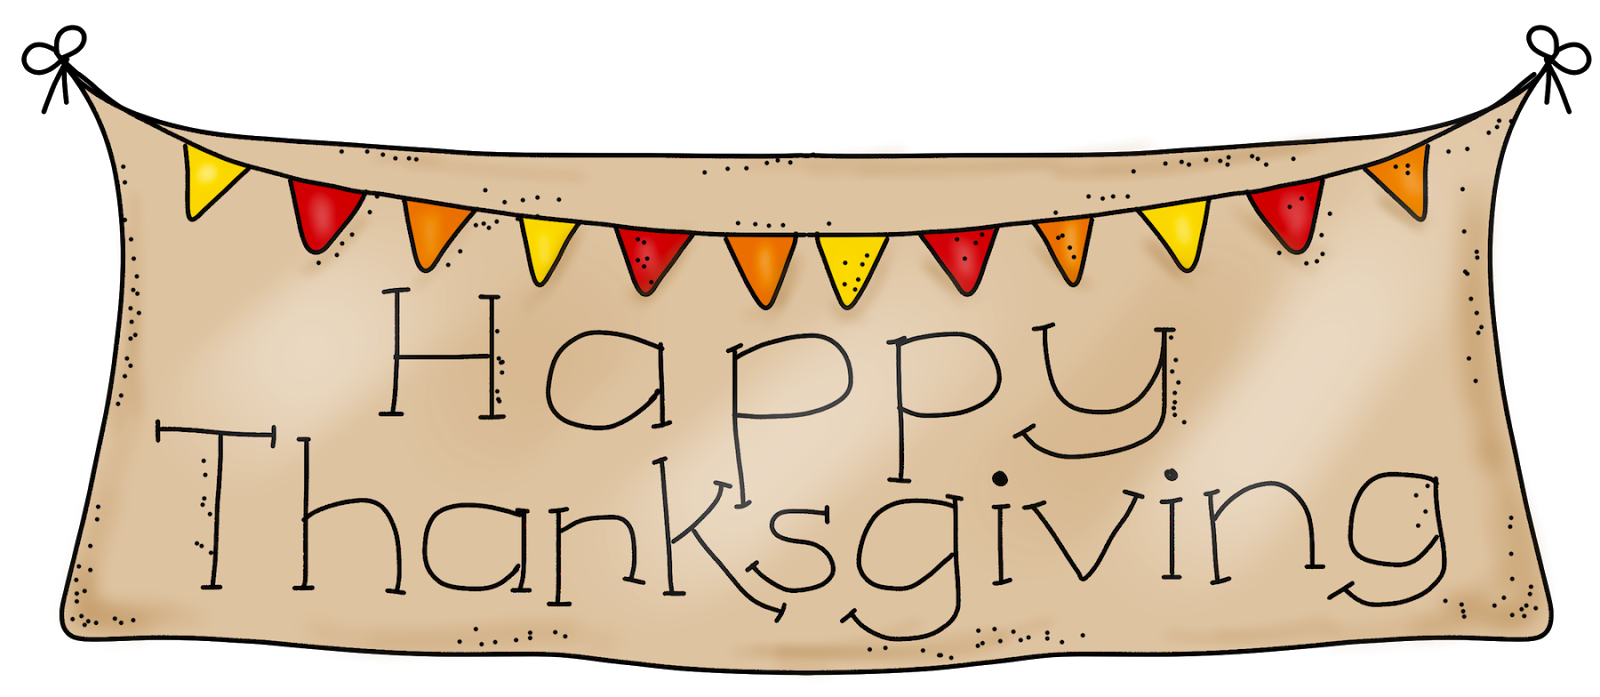 House clipart thanksgiving. Stretching the one income